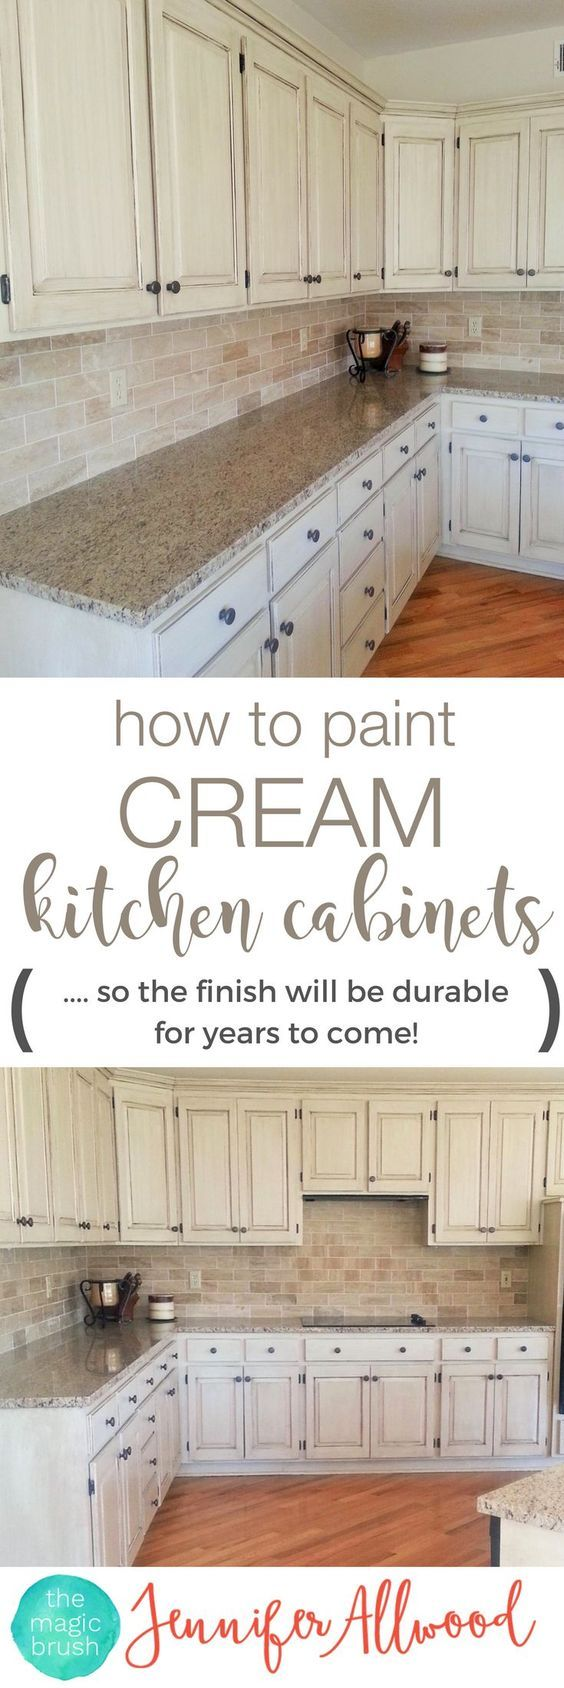 4356 best DIY images on Pinterest | Carpentry, Furniture ideas and ...